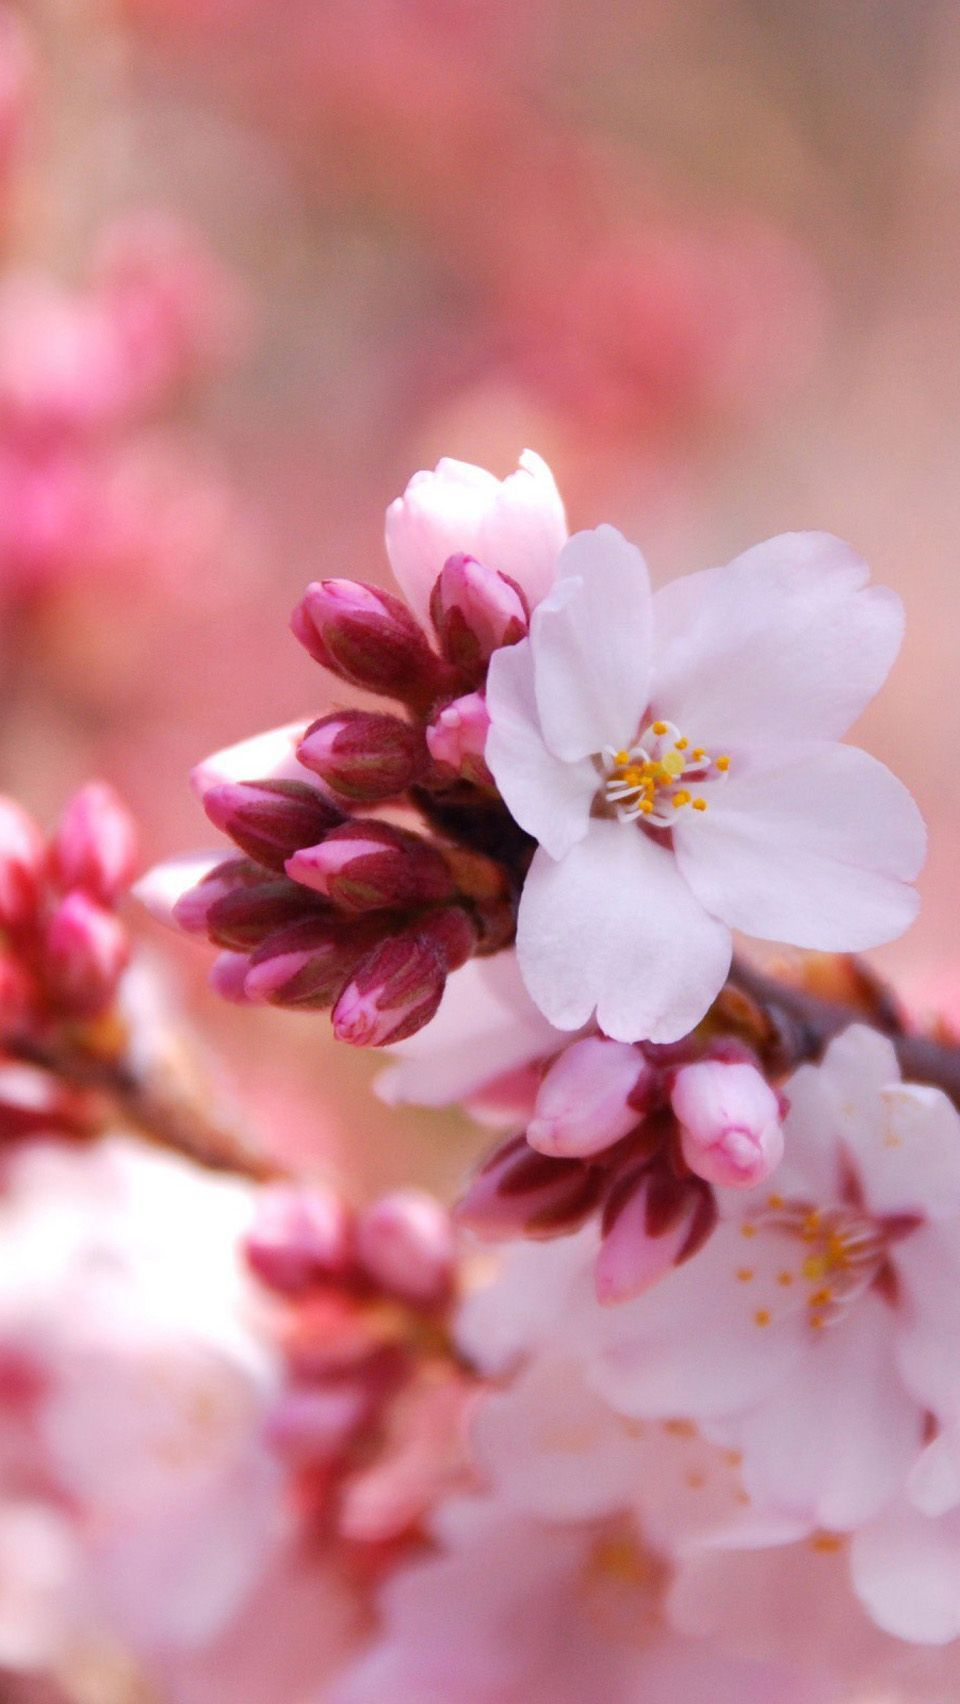 Japanese Cherry Blossom iPhone Wallpapers - Top Free ...